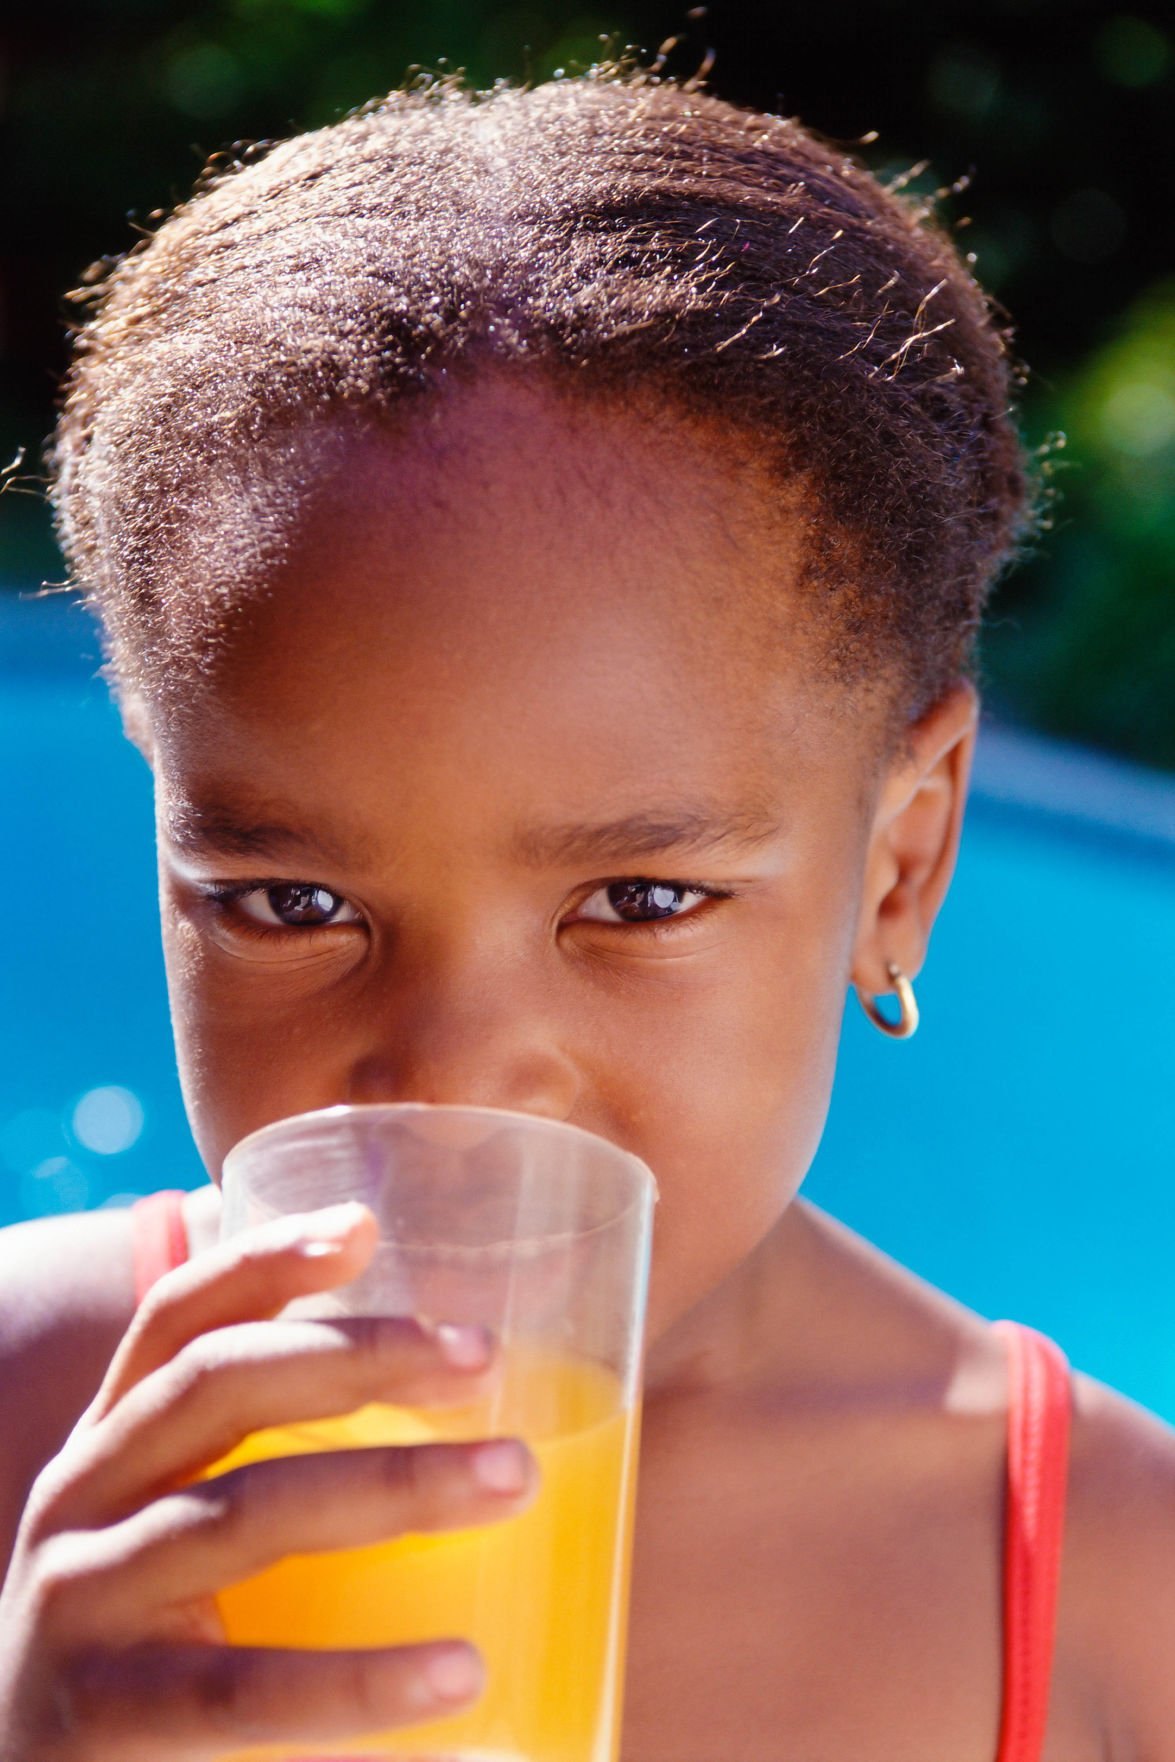 Kids and juice consumption